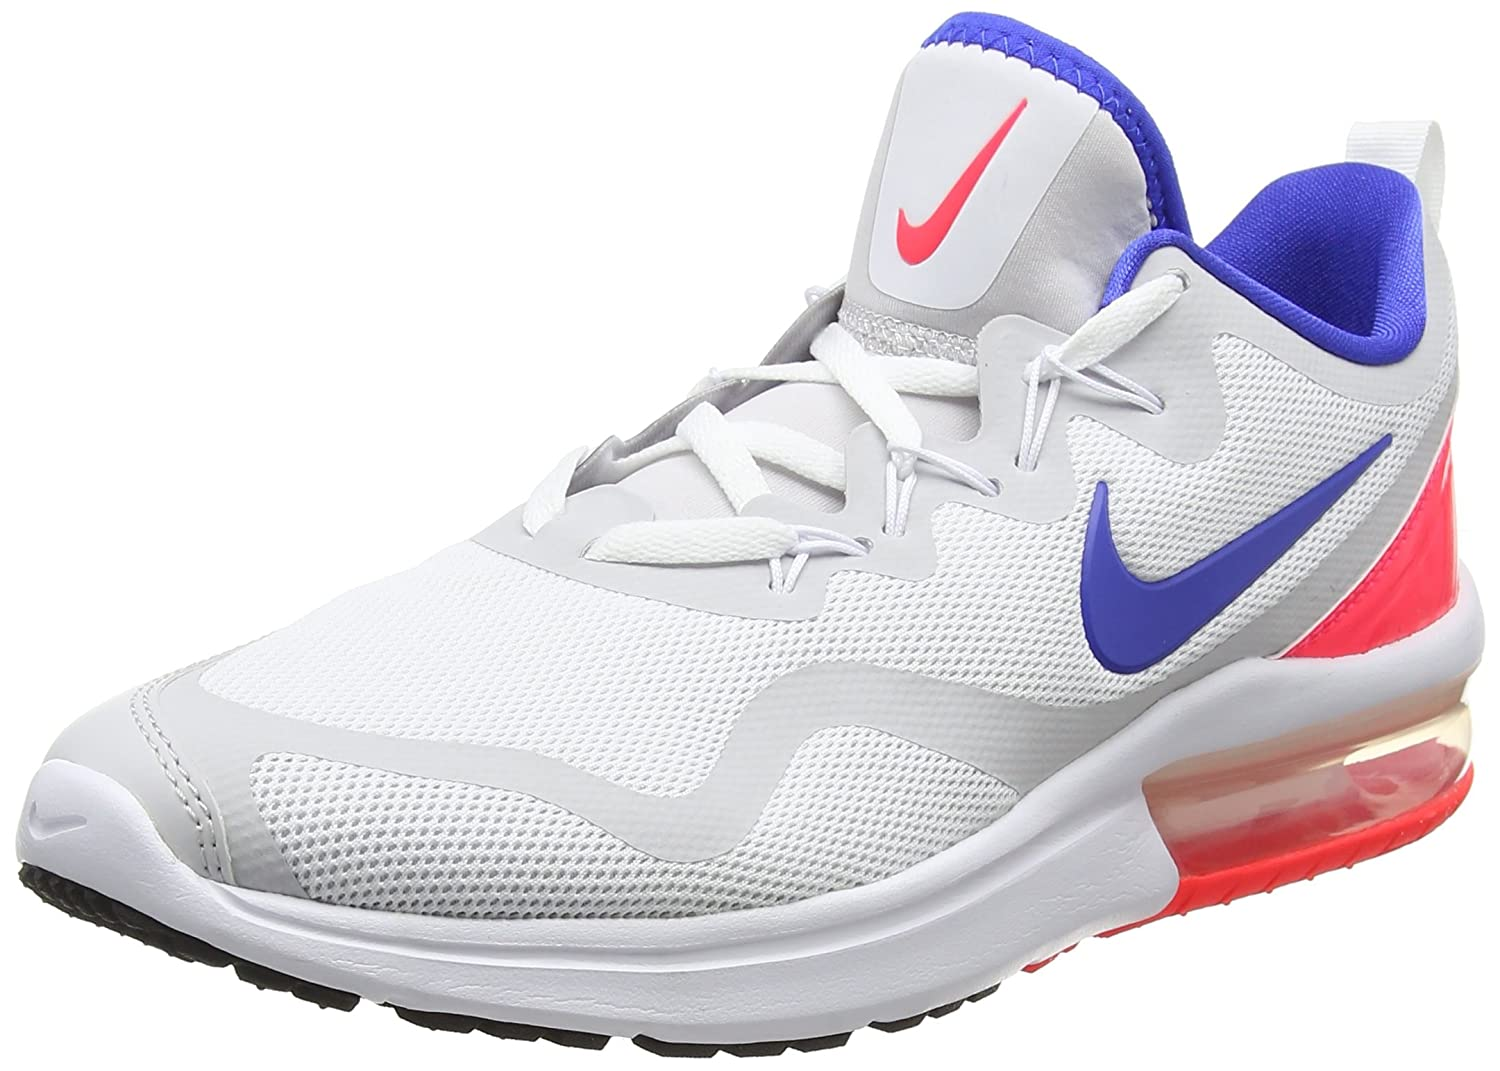 Nike Air MAX Fury, Zapatillas de Running para Hombre 47 EU|Multicolor (Whiteultramarinesolar Re D B L 141)